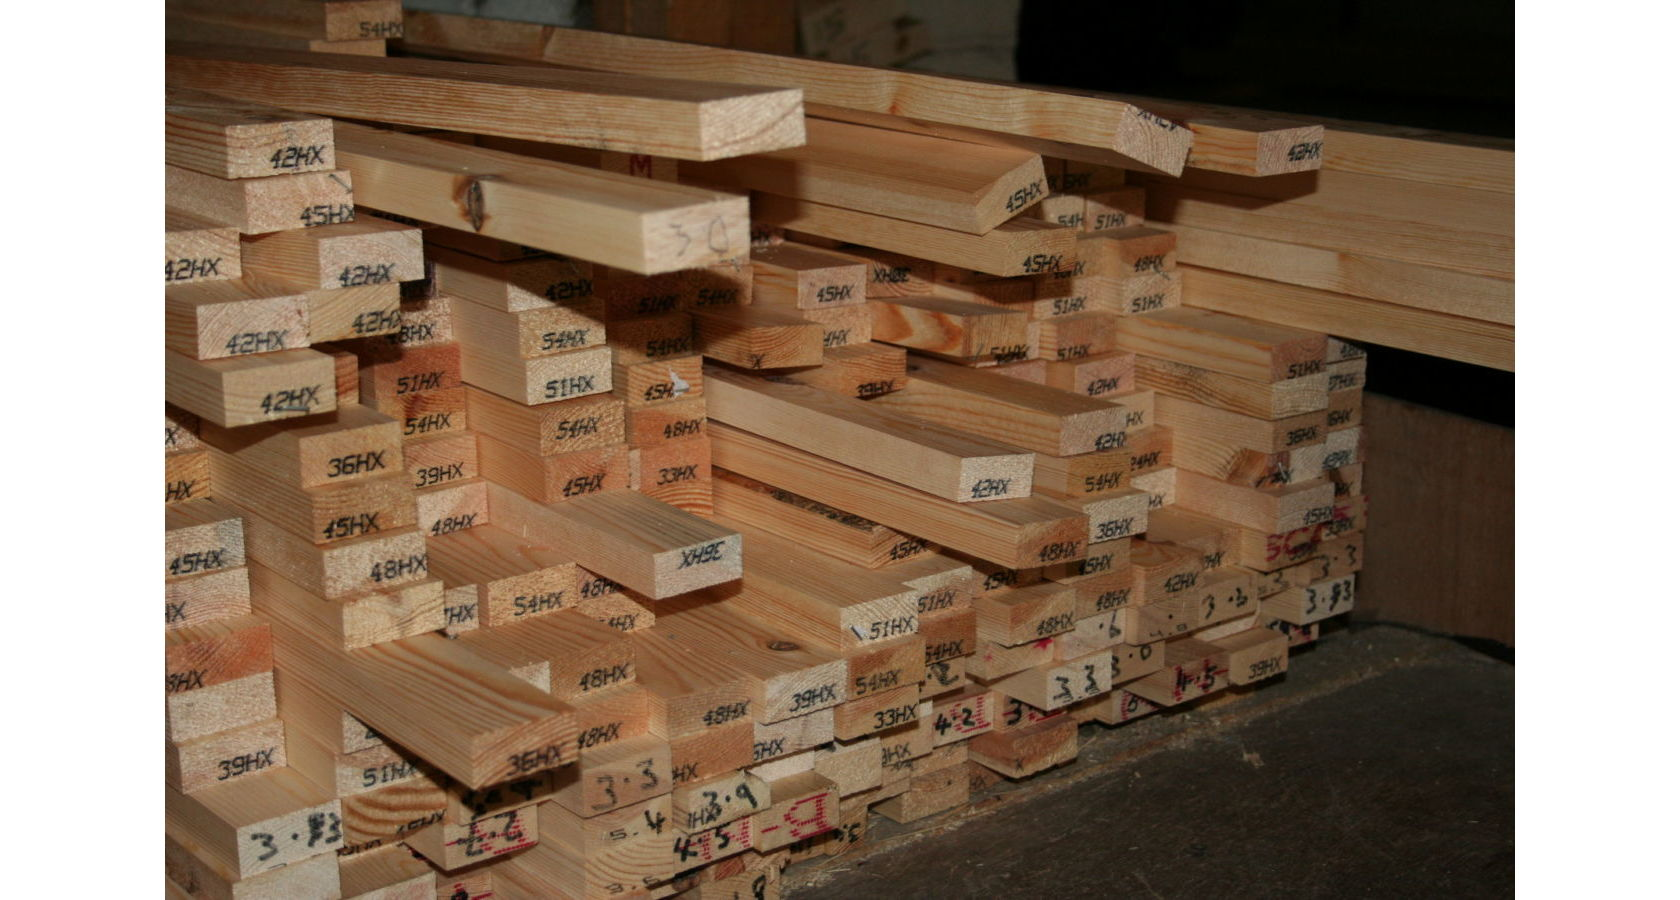 2x1 Planed Softwood - in the rack; Image 1500